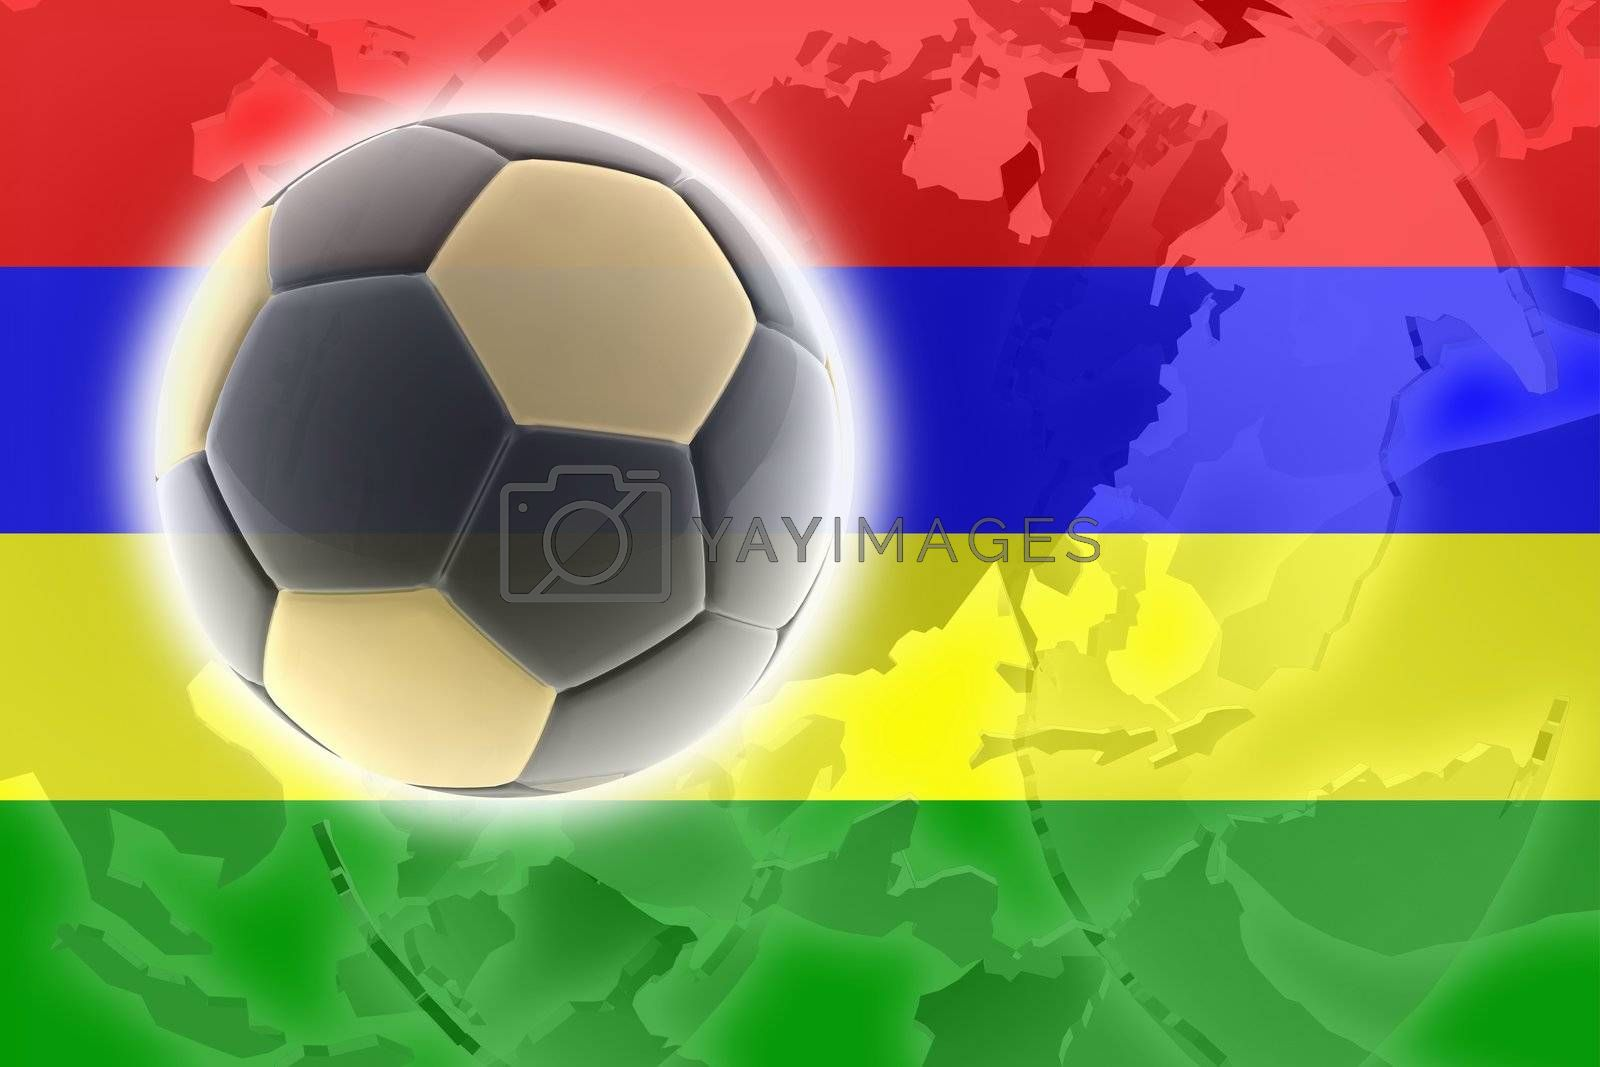 Flag of Mauritius, national country symbol illustration sports soccer football